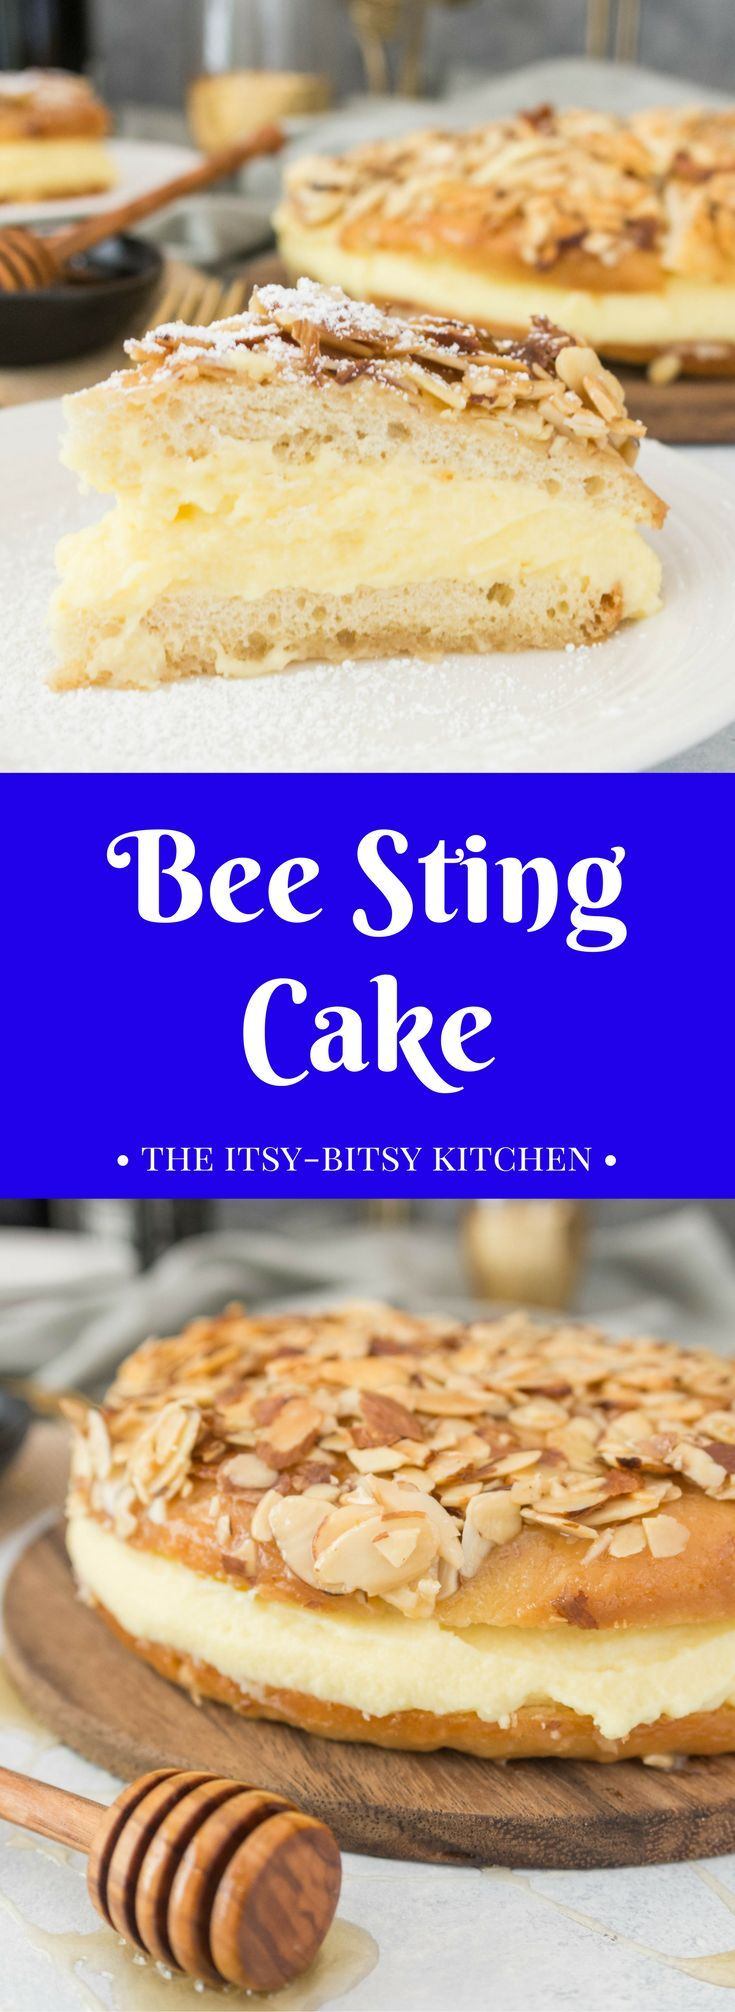 A recipe for bee sting cake--a delicious German dessert made with a yeasted cake topped with honey and almonds and filled with sweet pastry cream; it's the perfect dessert for your #Oktoberfest festivities! #Oktoberfestbash #Oktoberfestrecipe